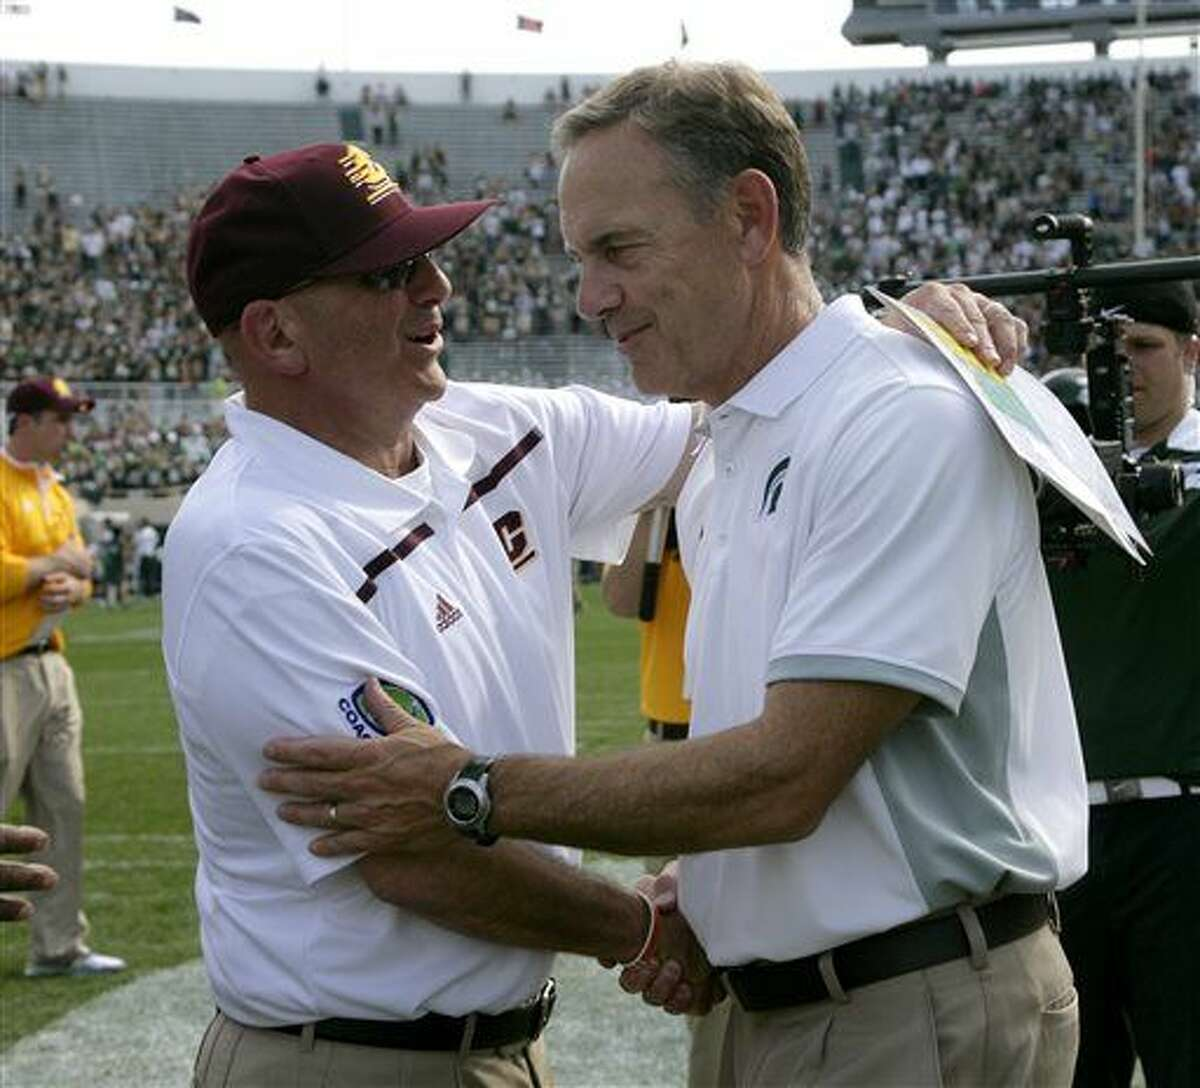 FILE - In this Sept. 26, 2015, file photo, Michigan State coach Mark Dantonio, right, and Central Michigan coach John Bonamego shake hands following an NCAA college football game in East Lansing, Mich. Central Michigan will play in the Quick Lane Bowl against Minnesota on Monday, Dec. 28, in Detroit. (AP Photo/Al Goldis, File)